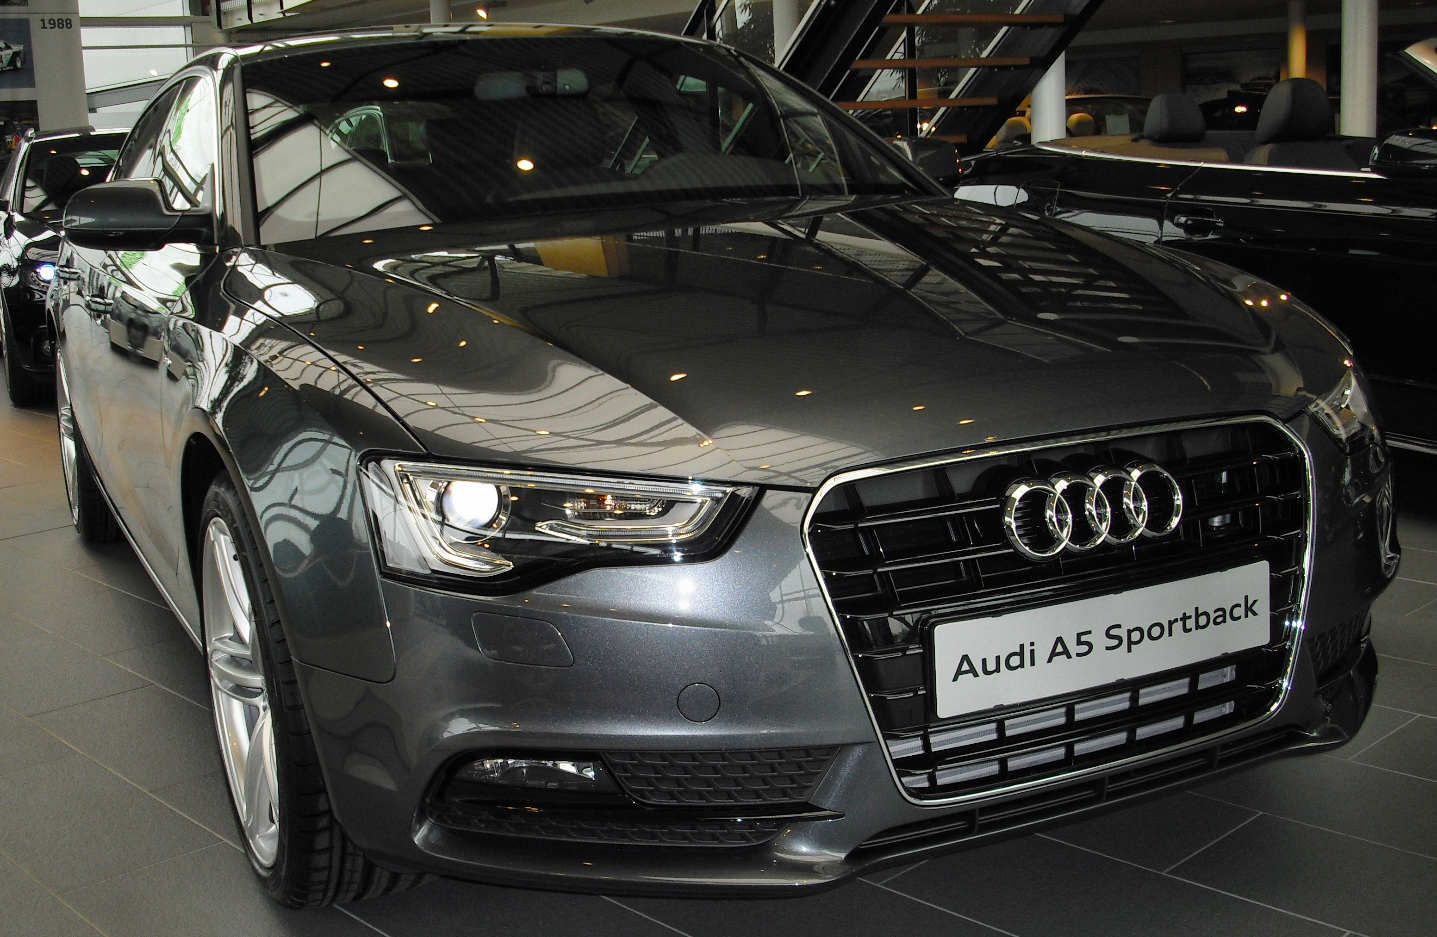 A5 Sportback neues Modell vorn ...